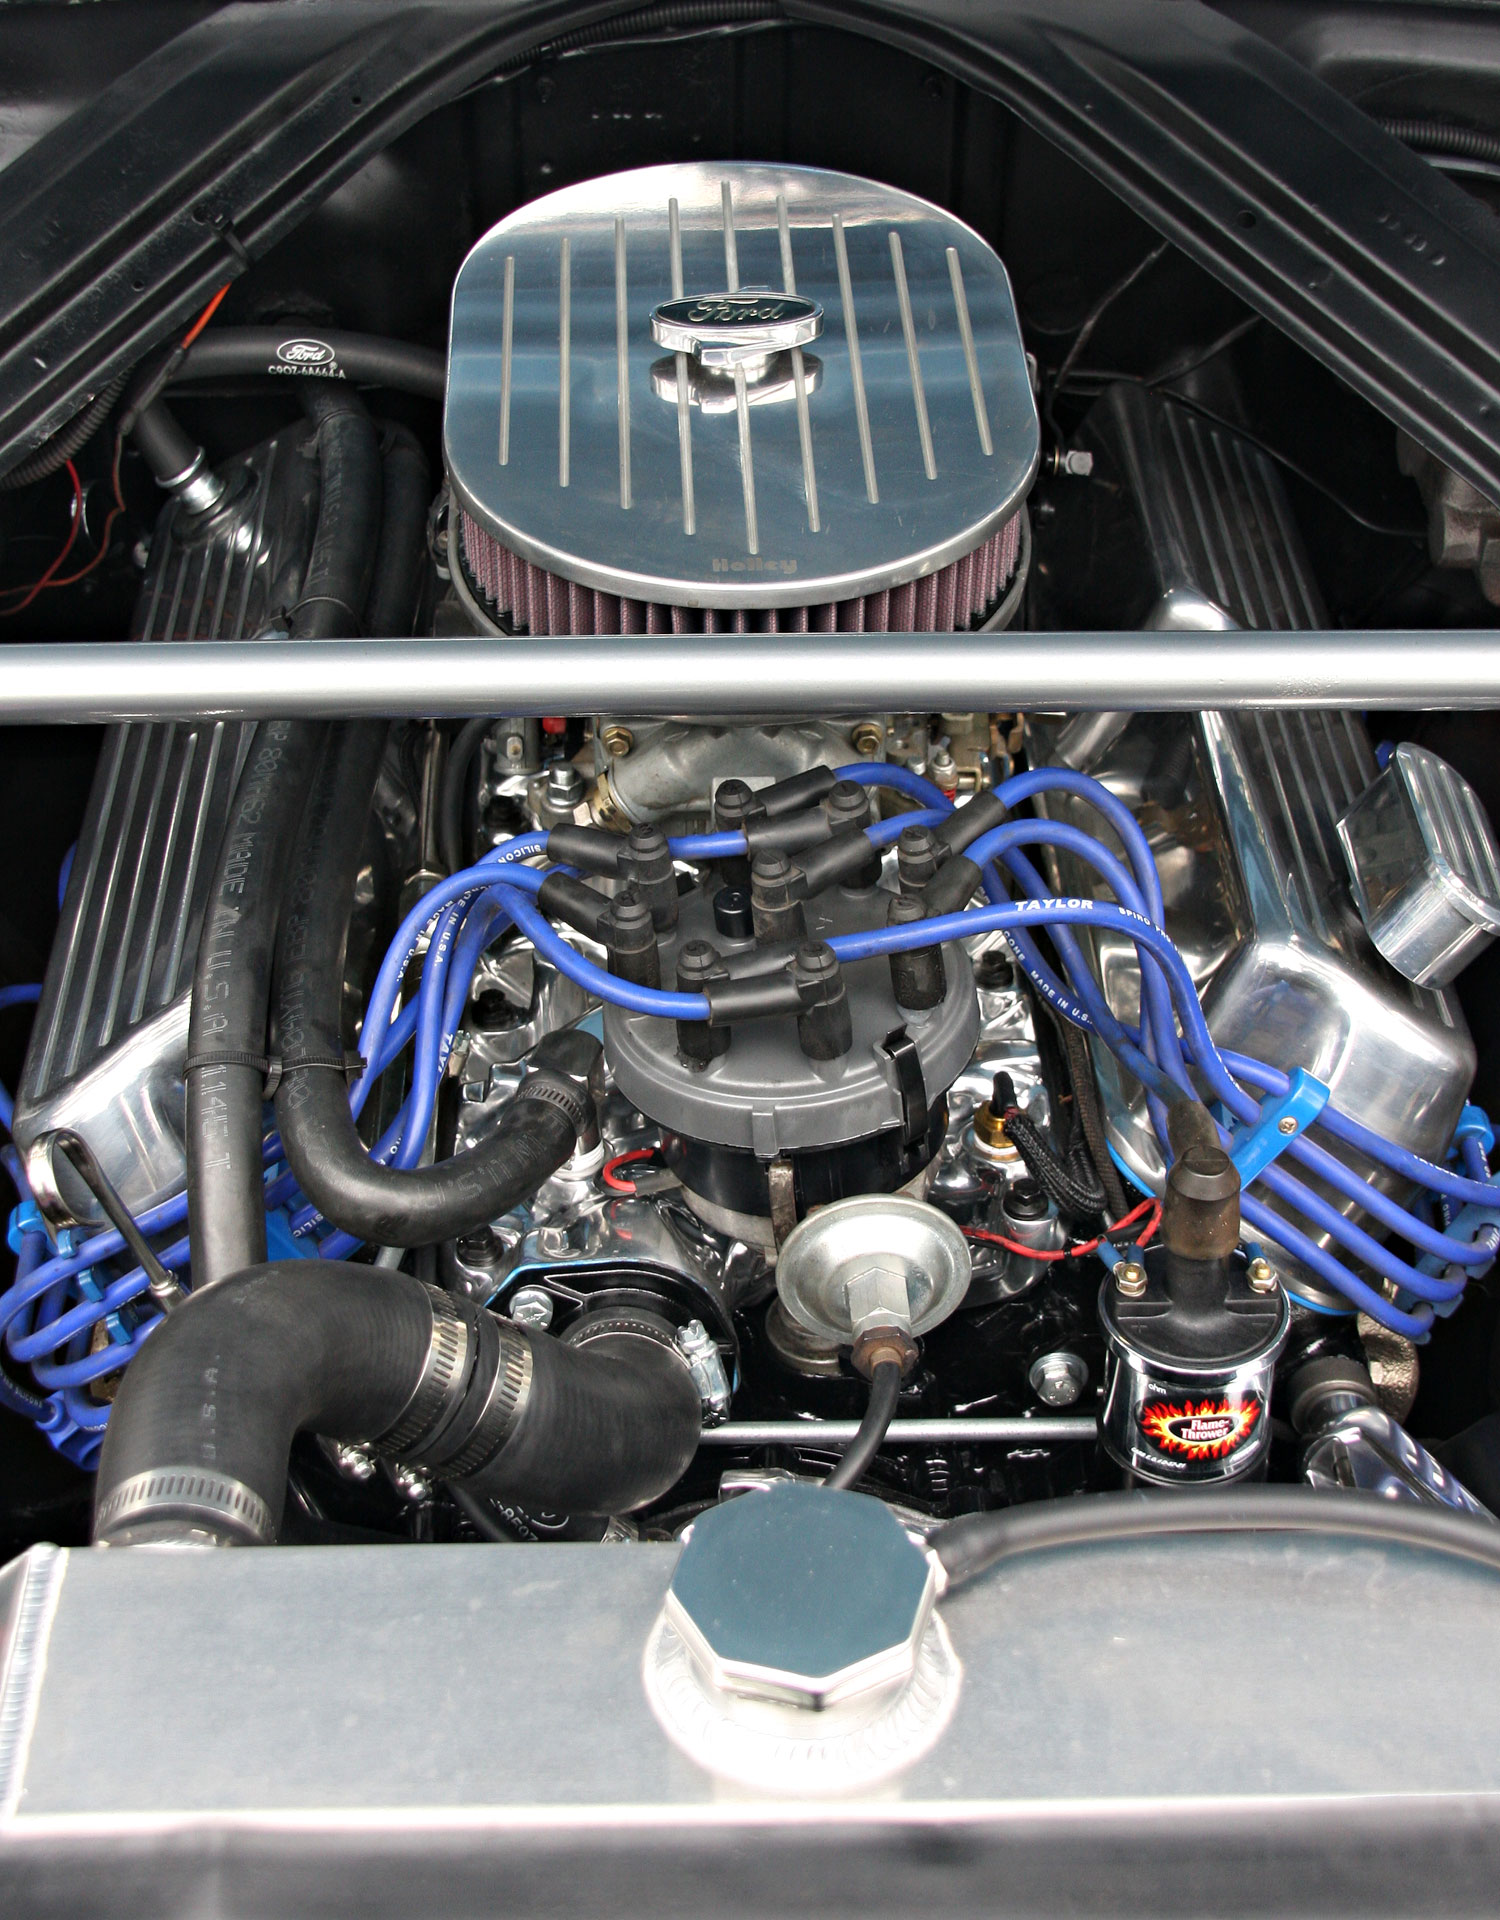 New 1965 Ranchero Engine re-built Mustangs Etc, Engine H&H Flatheads